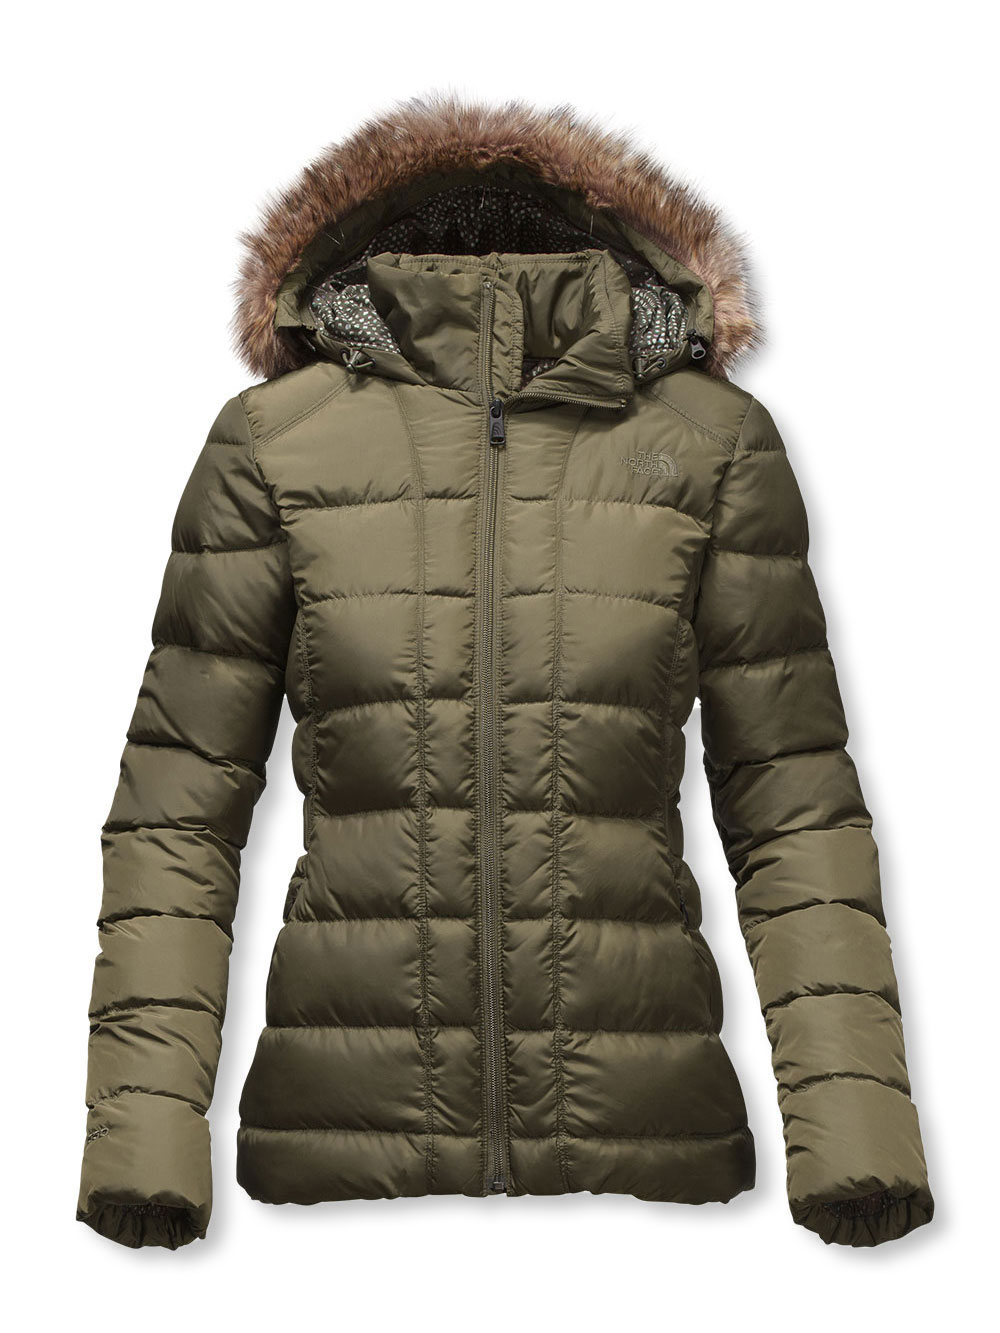 24cab6758 Women's Gotham Down Jacket by The North Face in Grape leaf from Cookie's  Kids